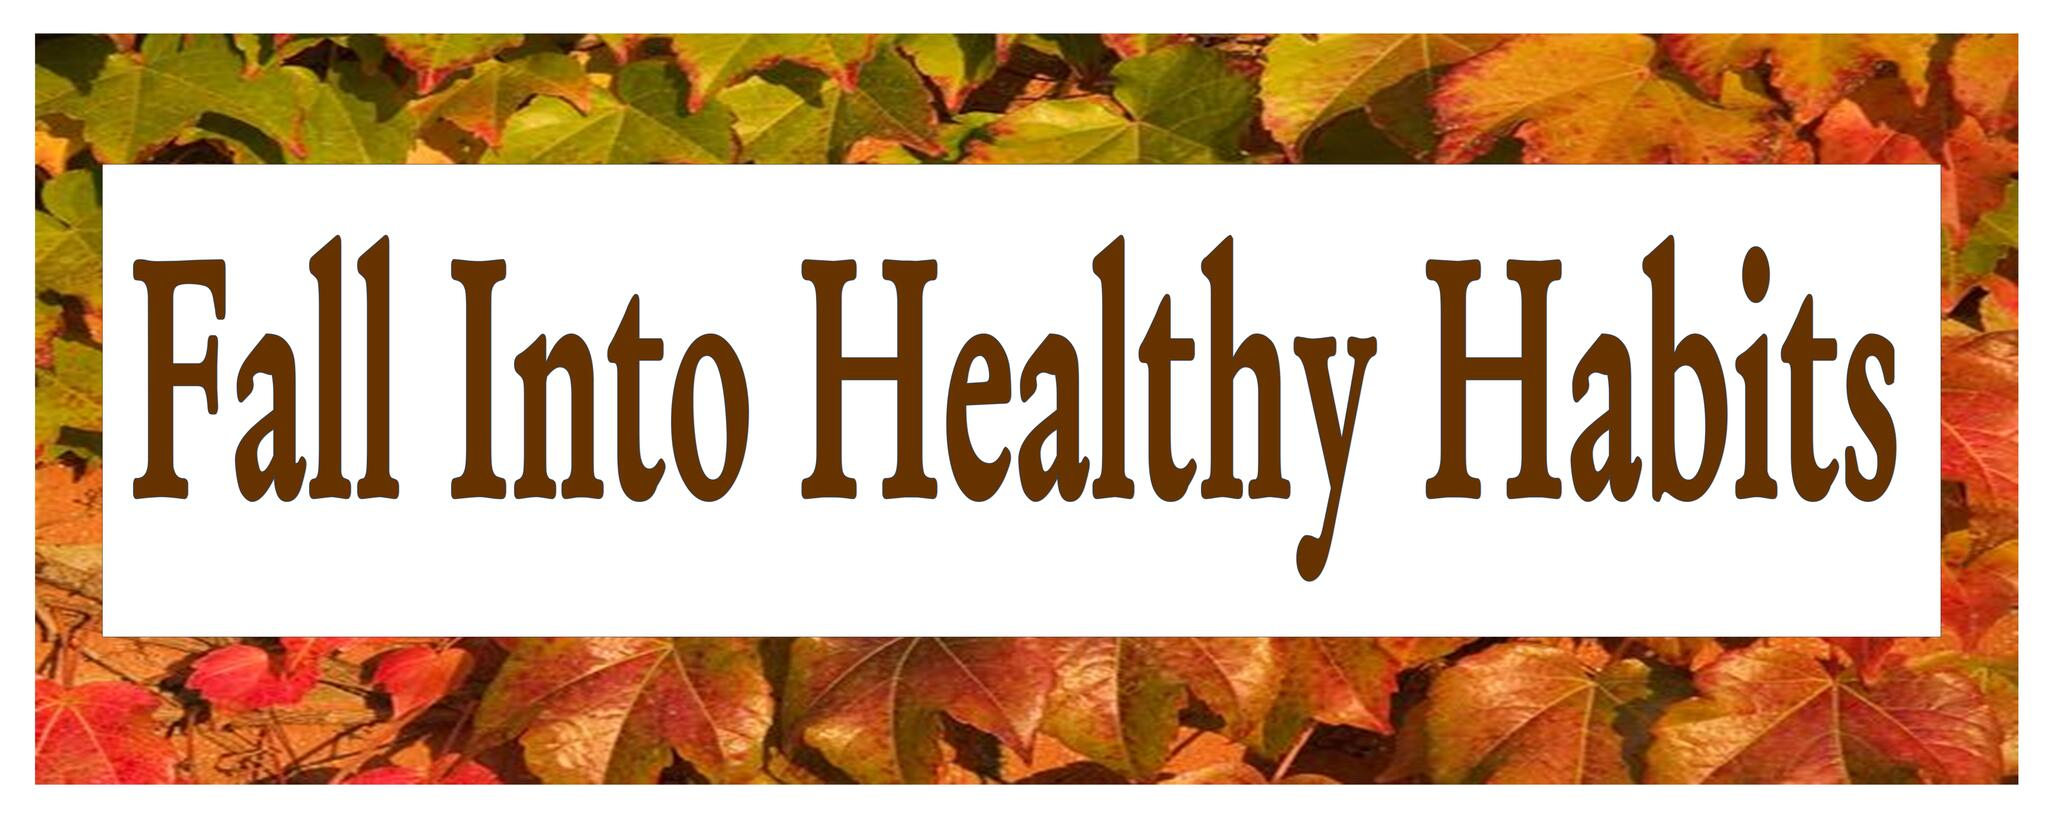 fall into health habits event banner